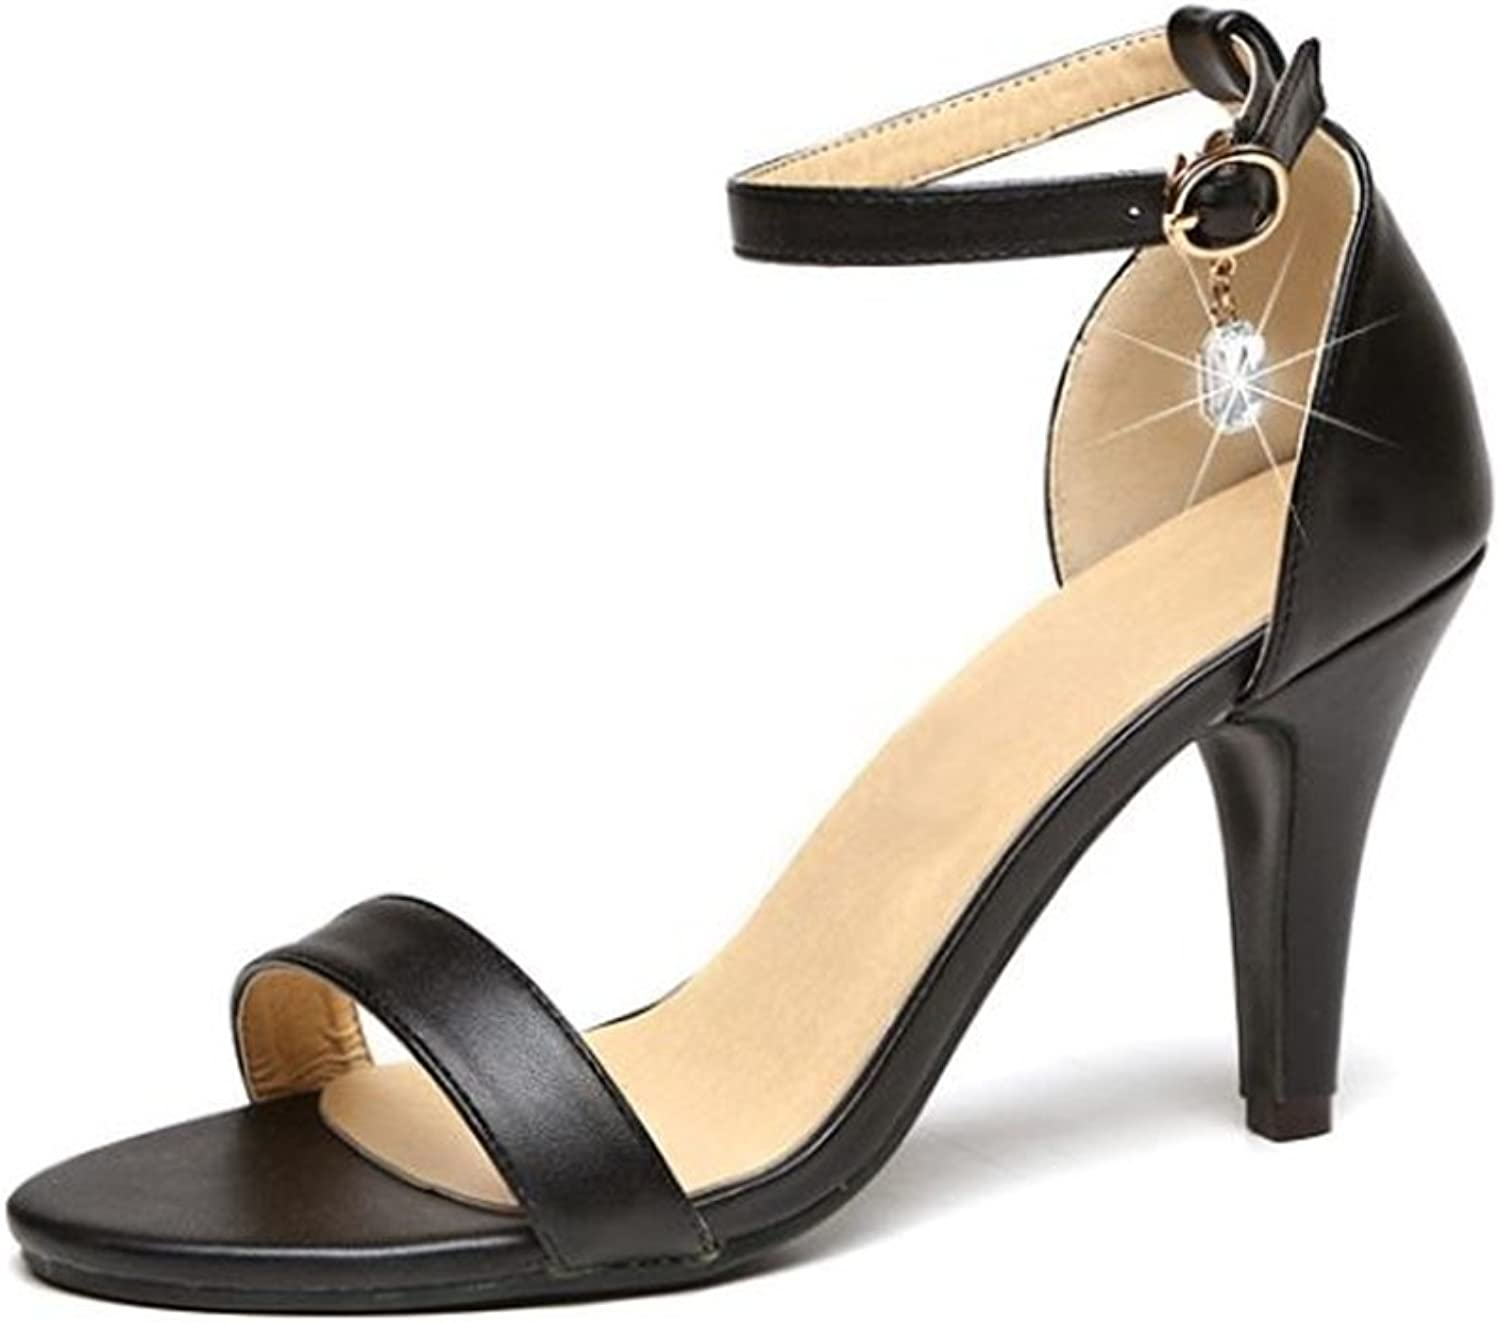 Women's Pointed Stiletto Heels with Metal Buckles and Skirts